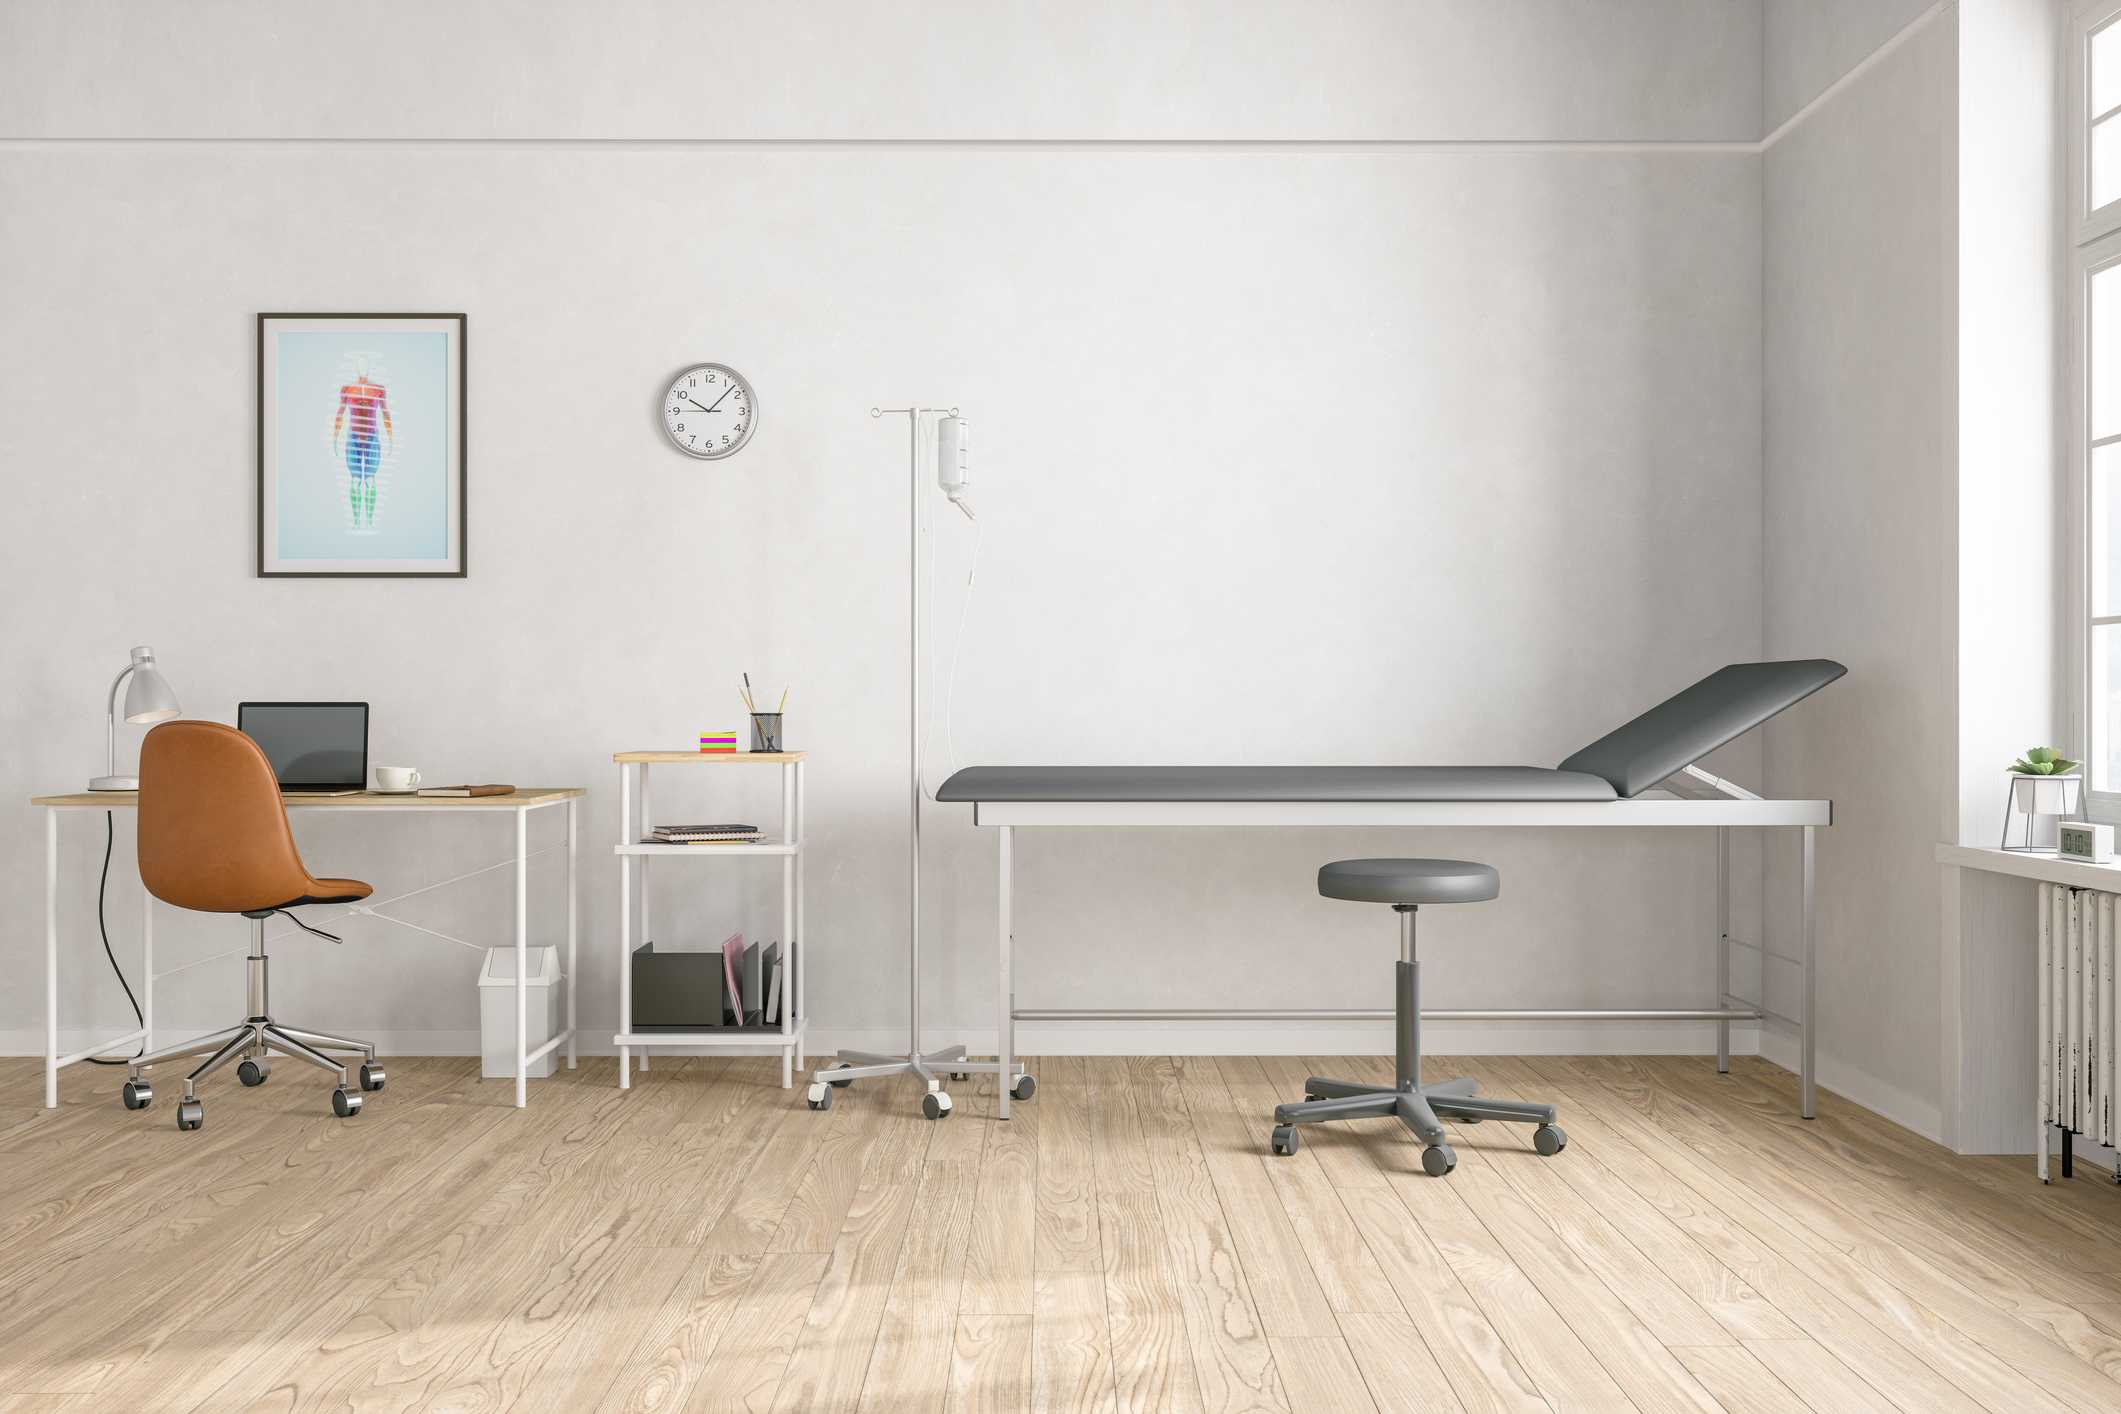 checklist of medical equipment for exam rooms